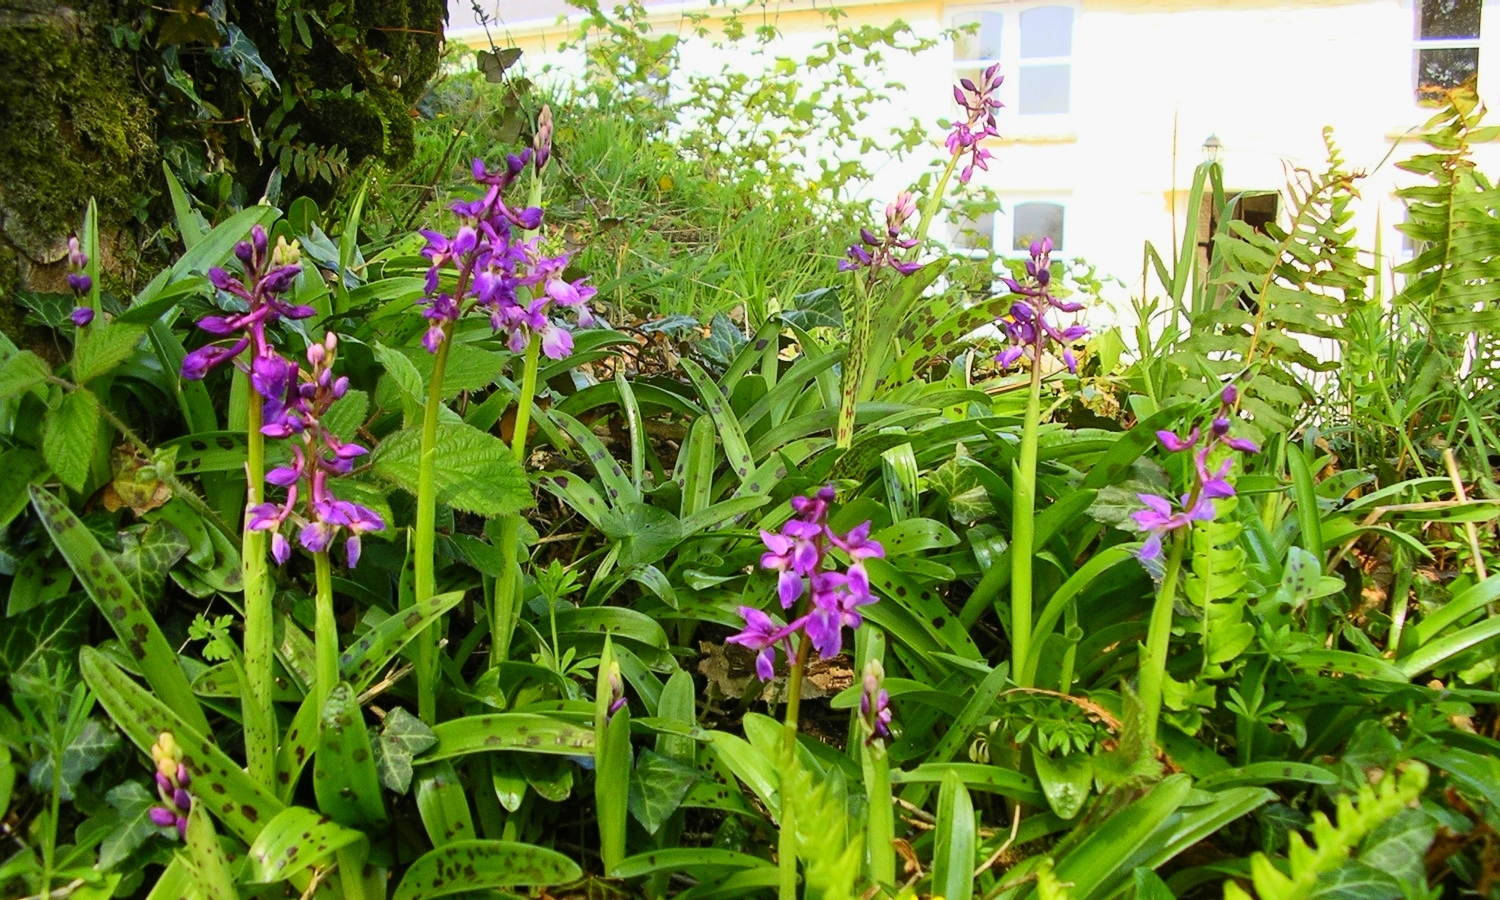 Wild orchids in May